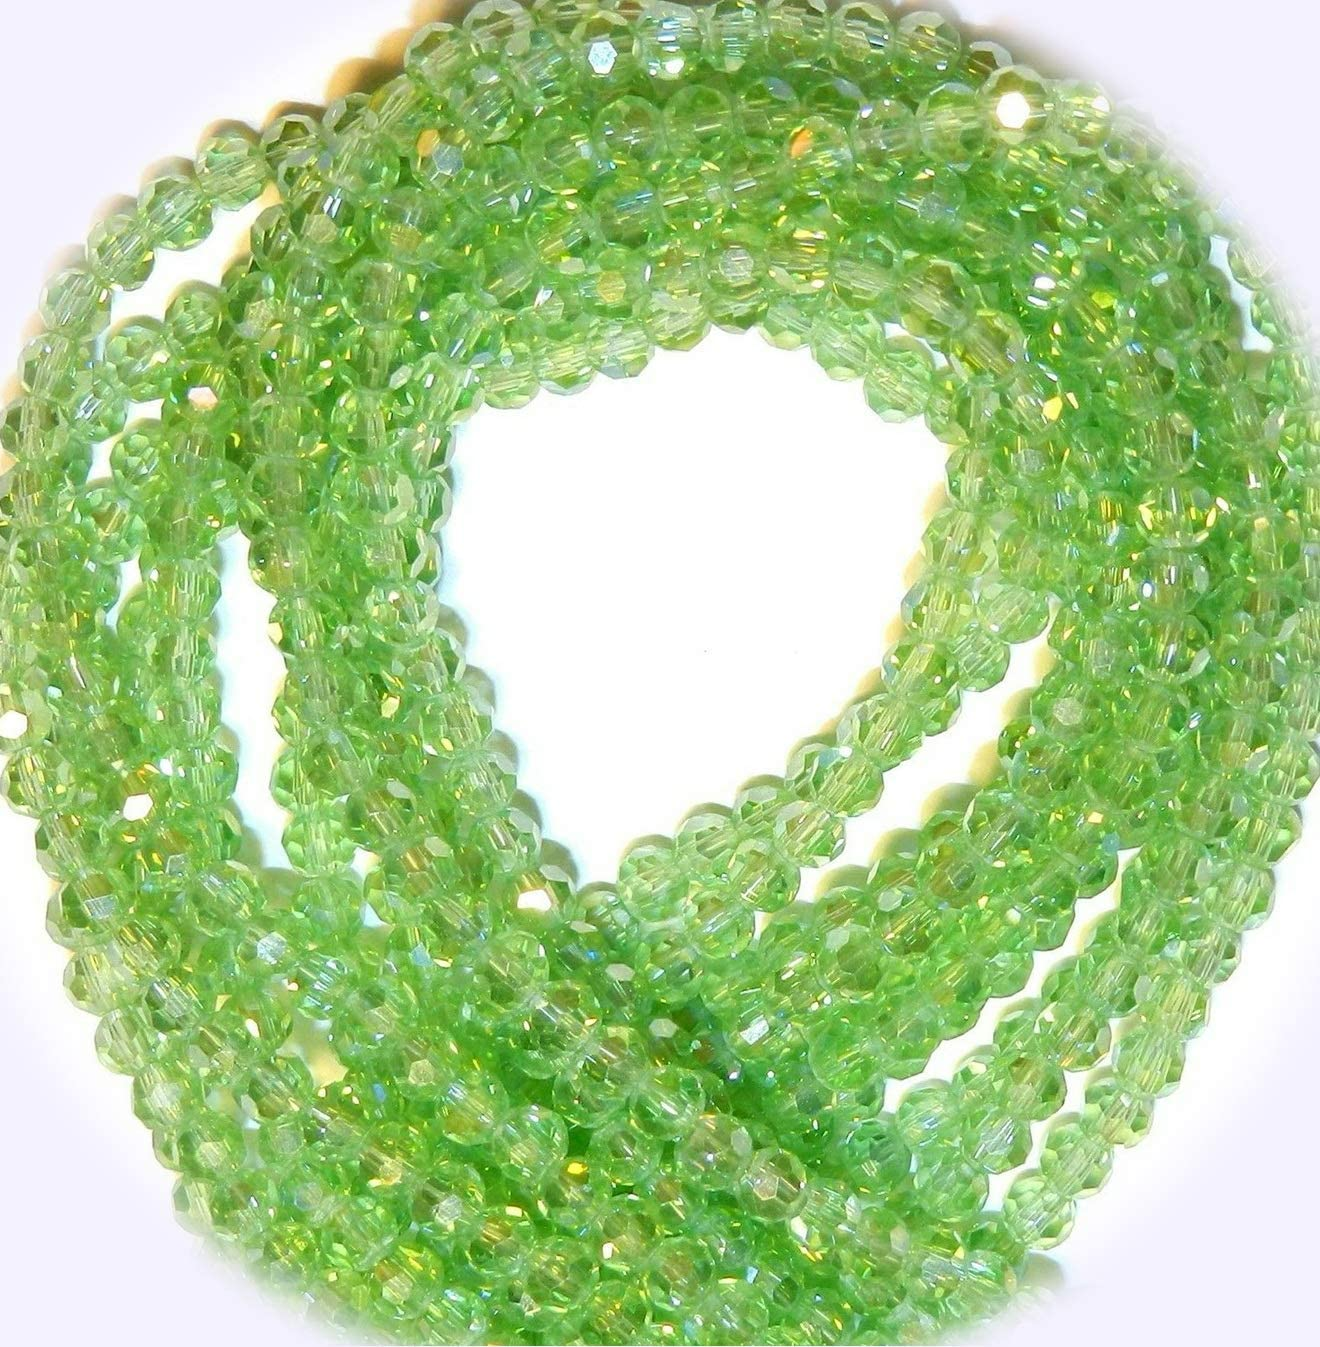 New Peridot Green AB 4mm Faceted Round Crystal Glass Jewelry-Making Beads 14-inch DIY Craft Supplies for Handmade Bracelet Necklace